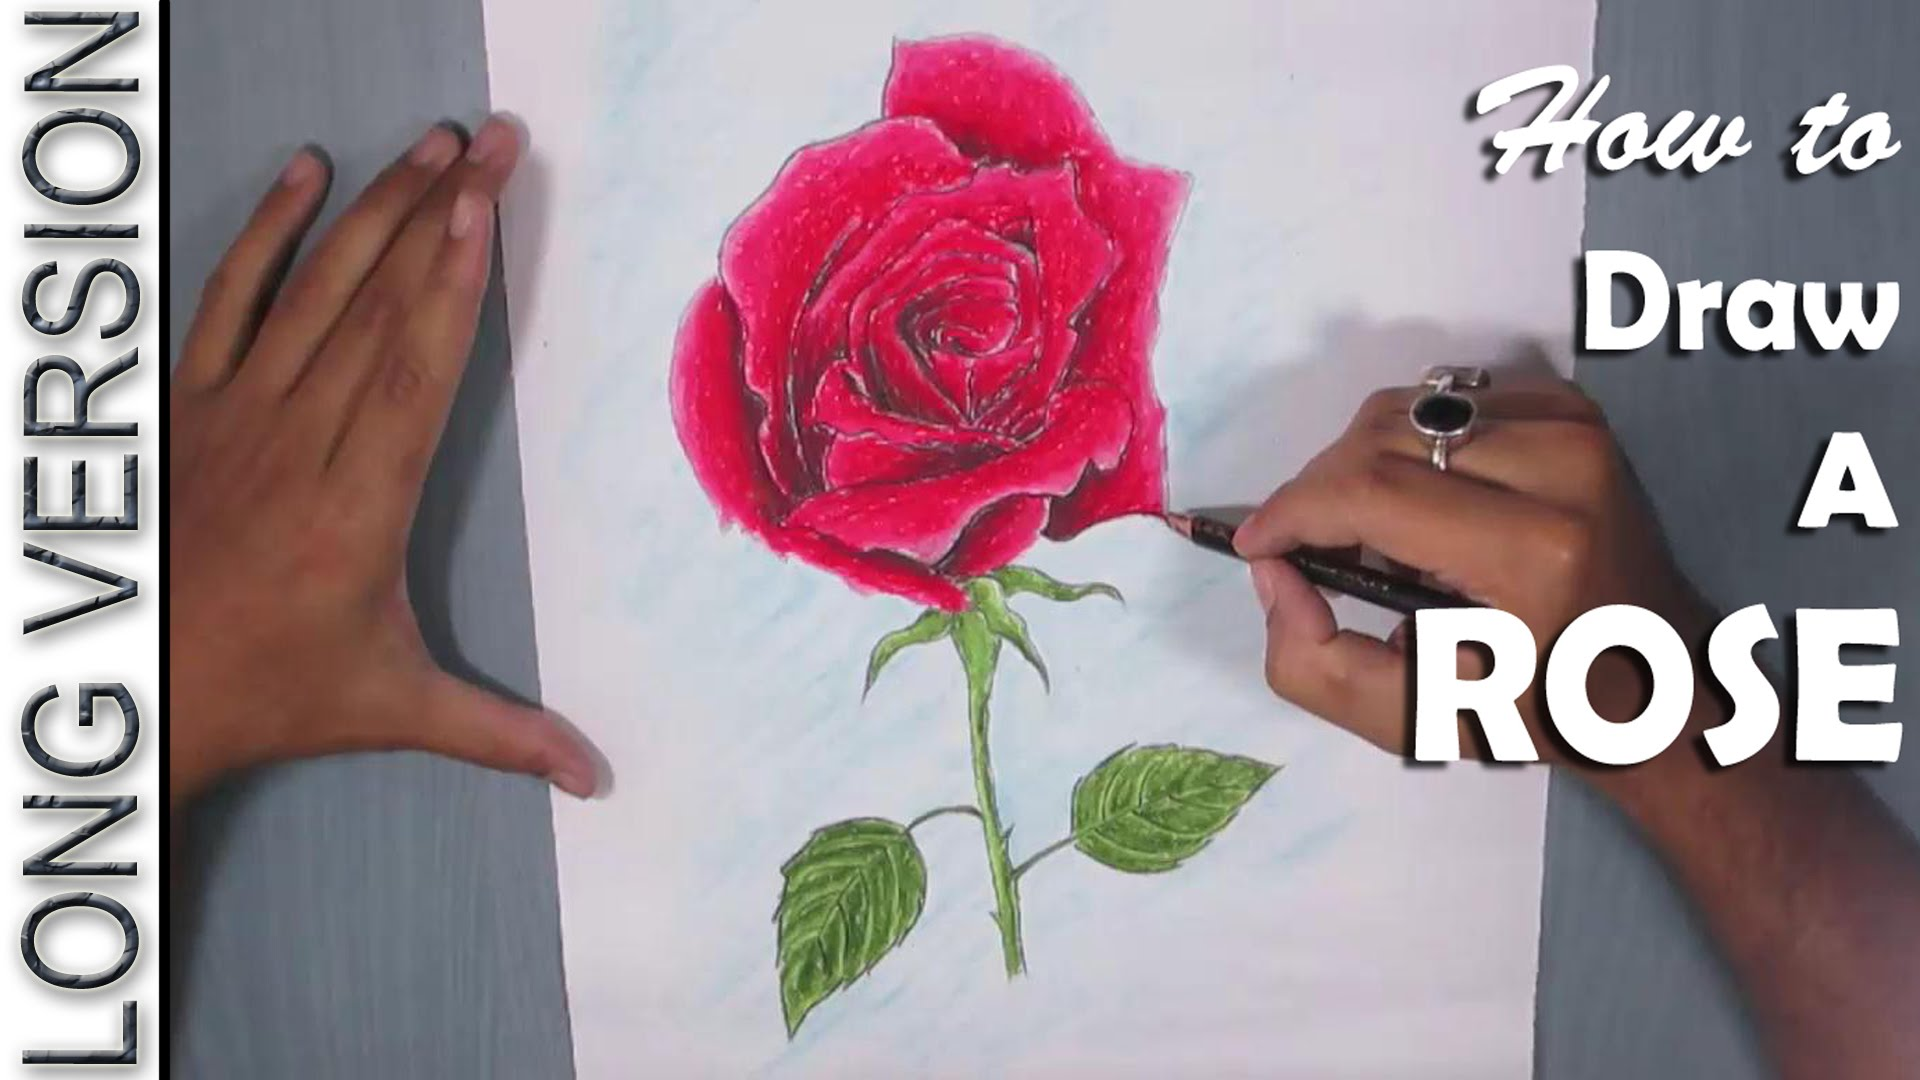 Drawn rose pastel drawing Pastel with  to How